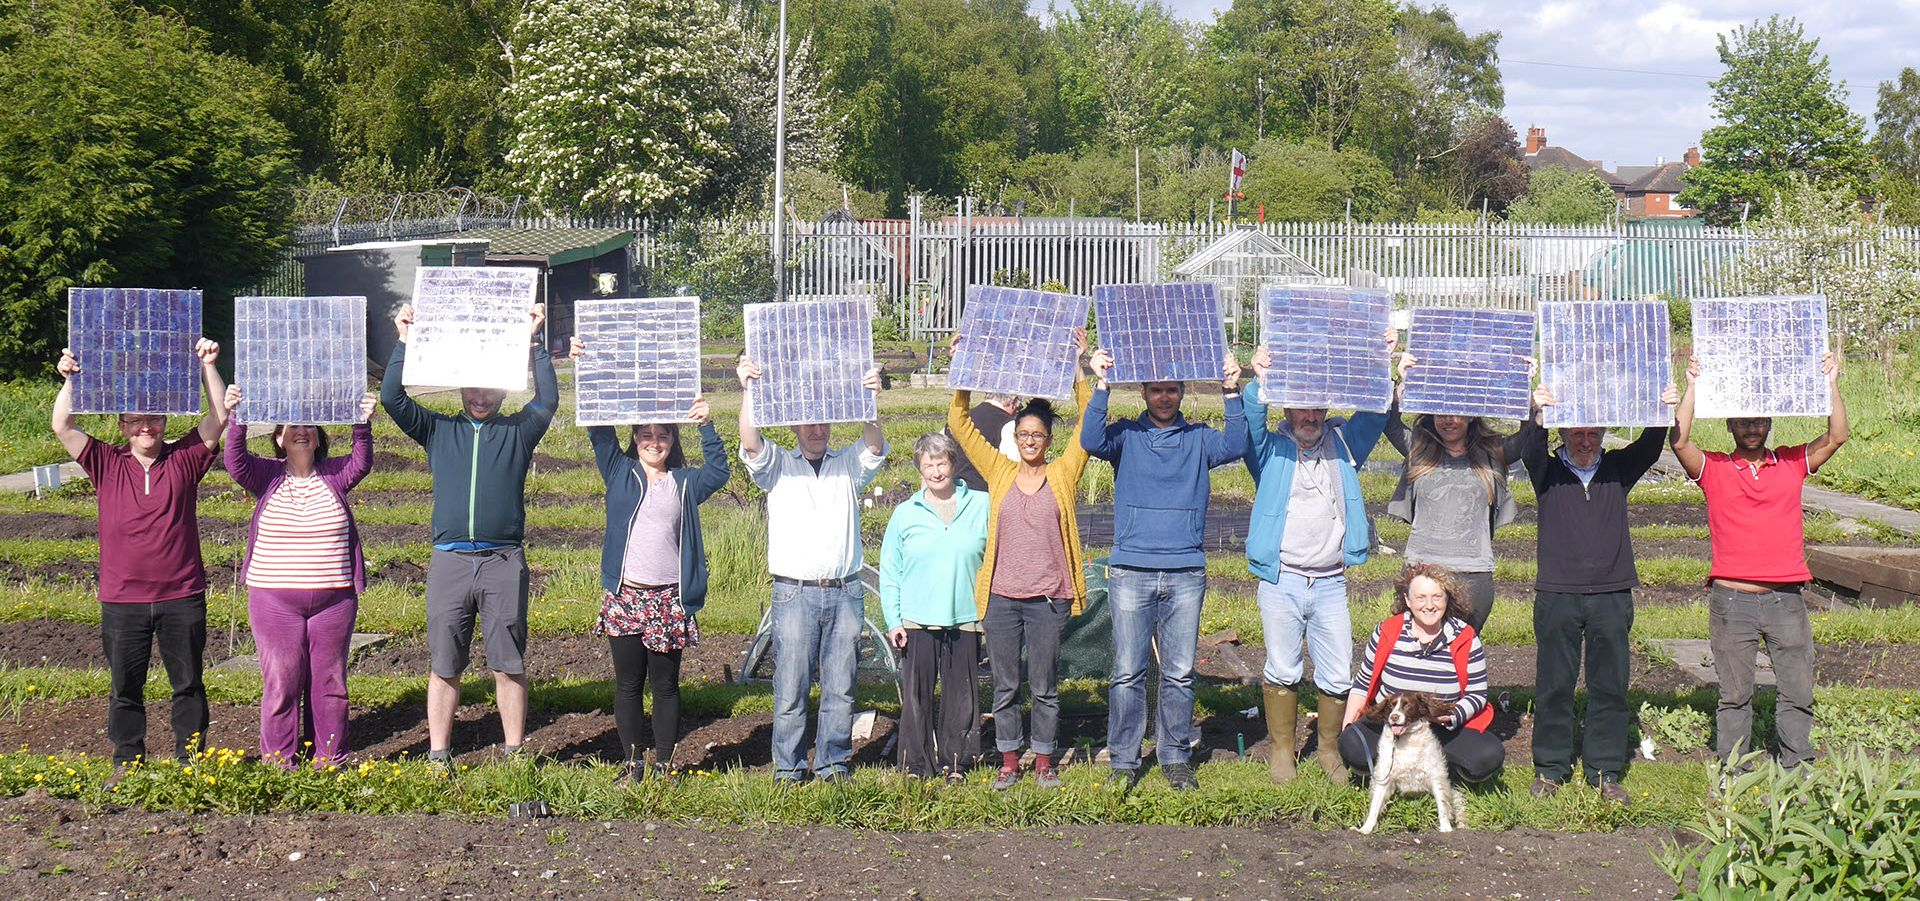 group of people of different ages, standing in a garden holding solar panels